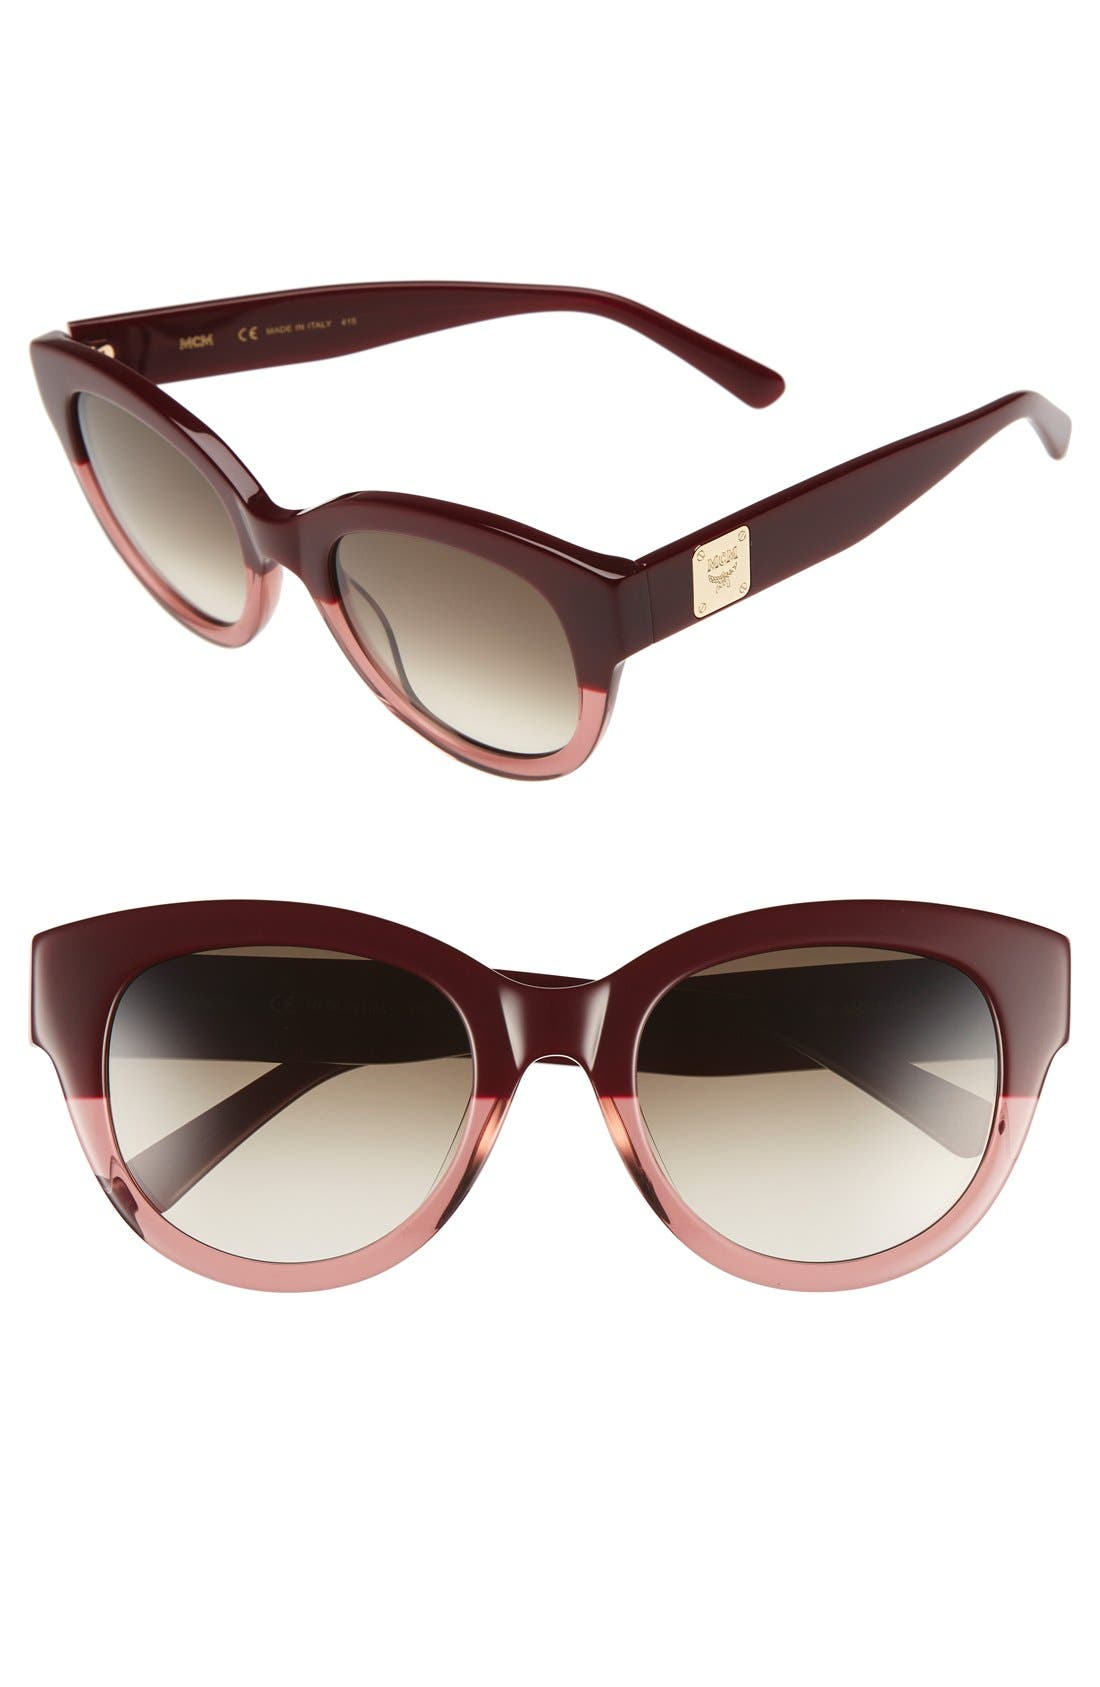 53mm Cat Eye Sunglasses,                             Main thumbnail 1, color,                             Bordeaux/ Antique Rose